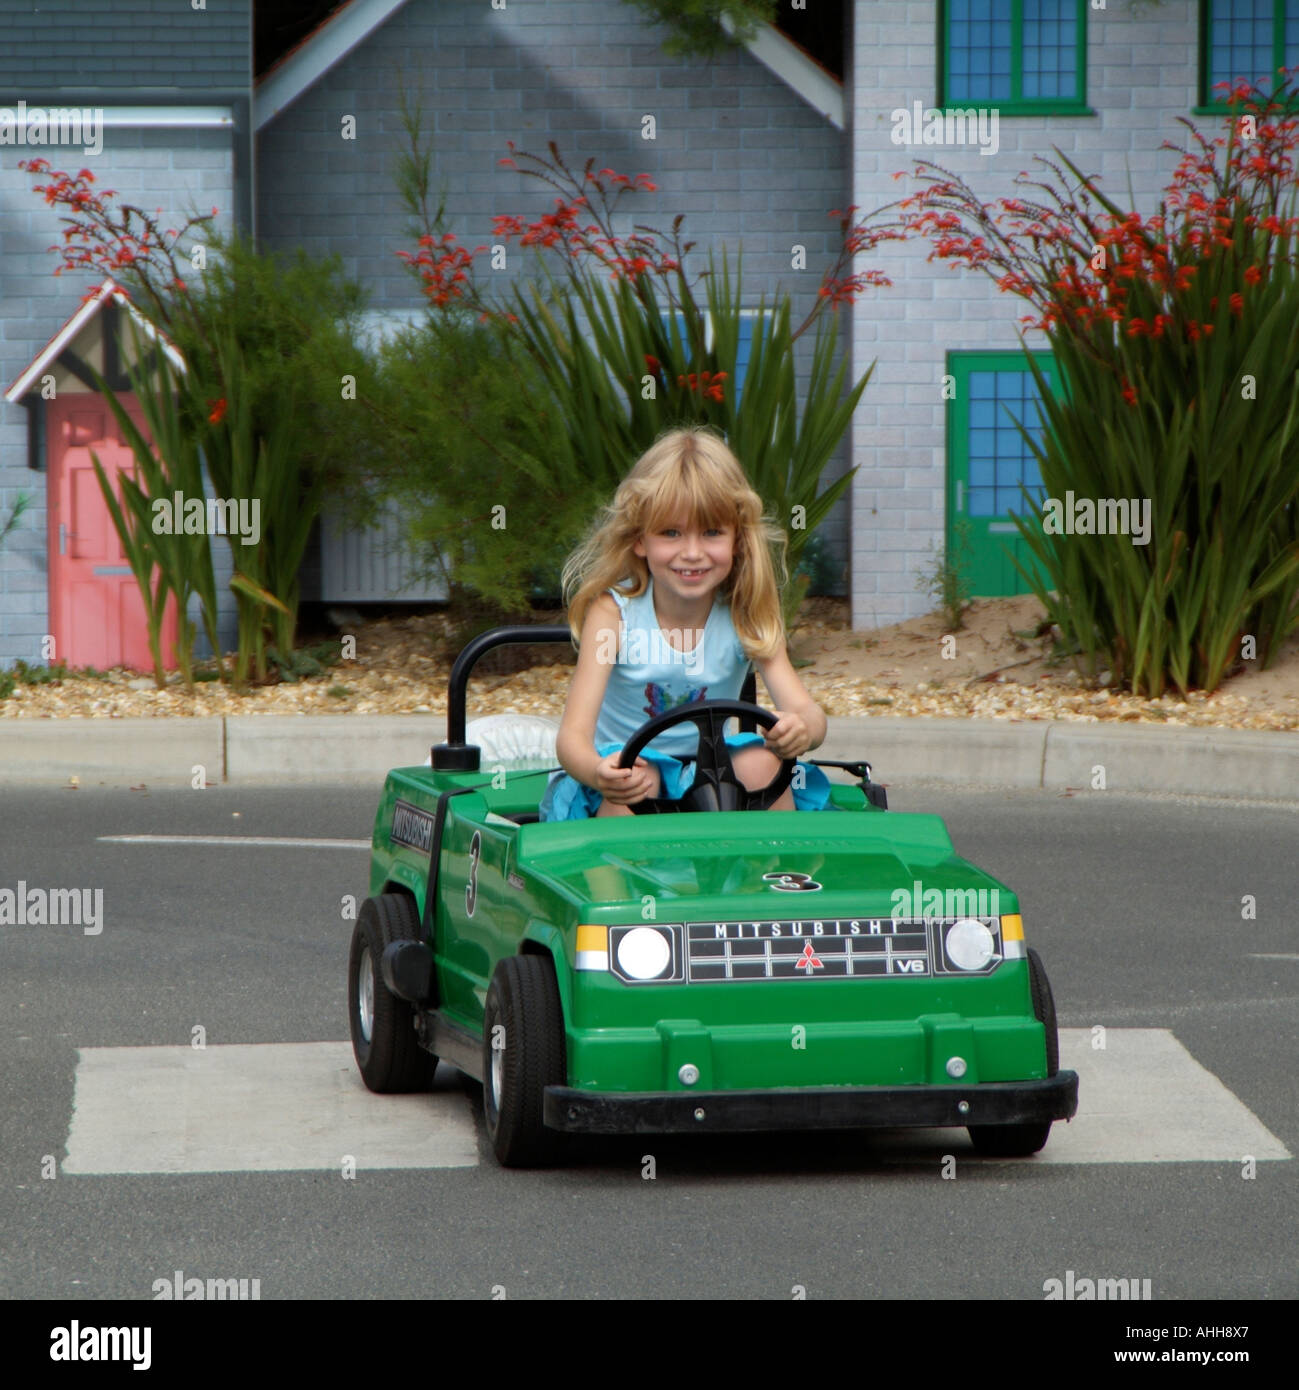 driving lessons for children kids learning the rules of the road using electric cars blonde girl driving a green car